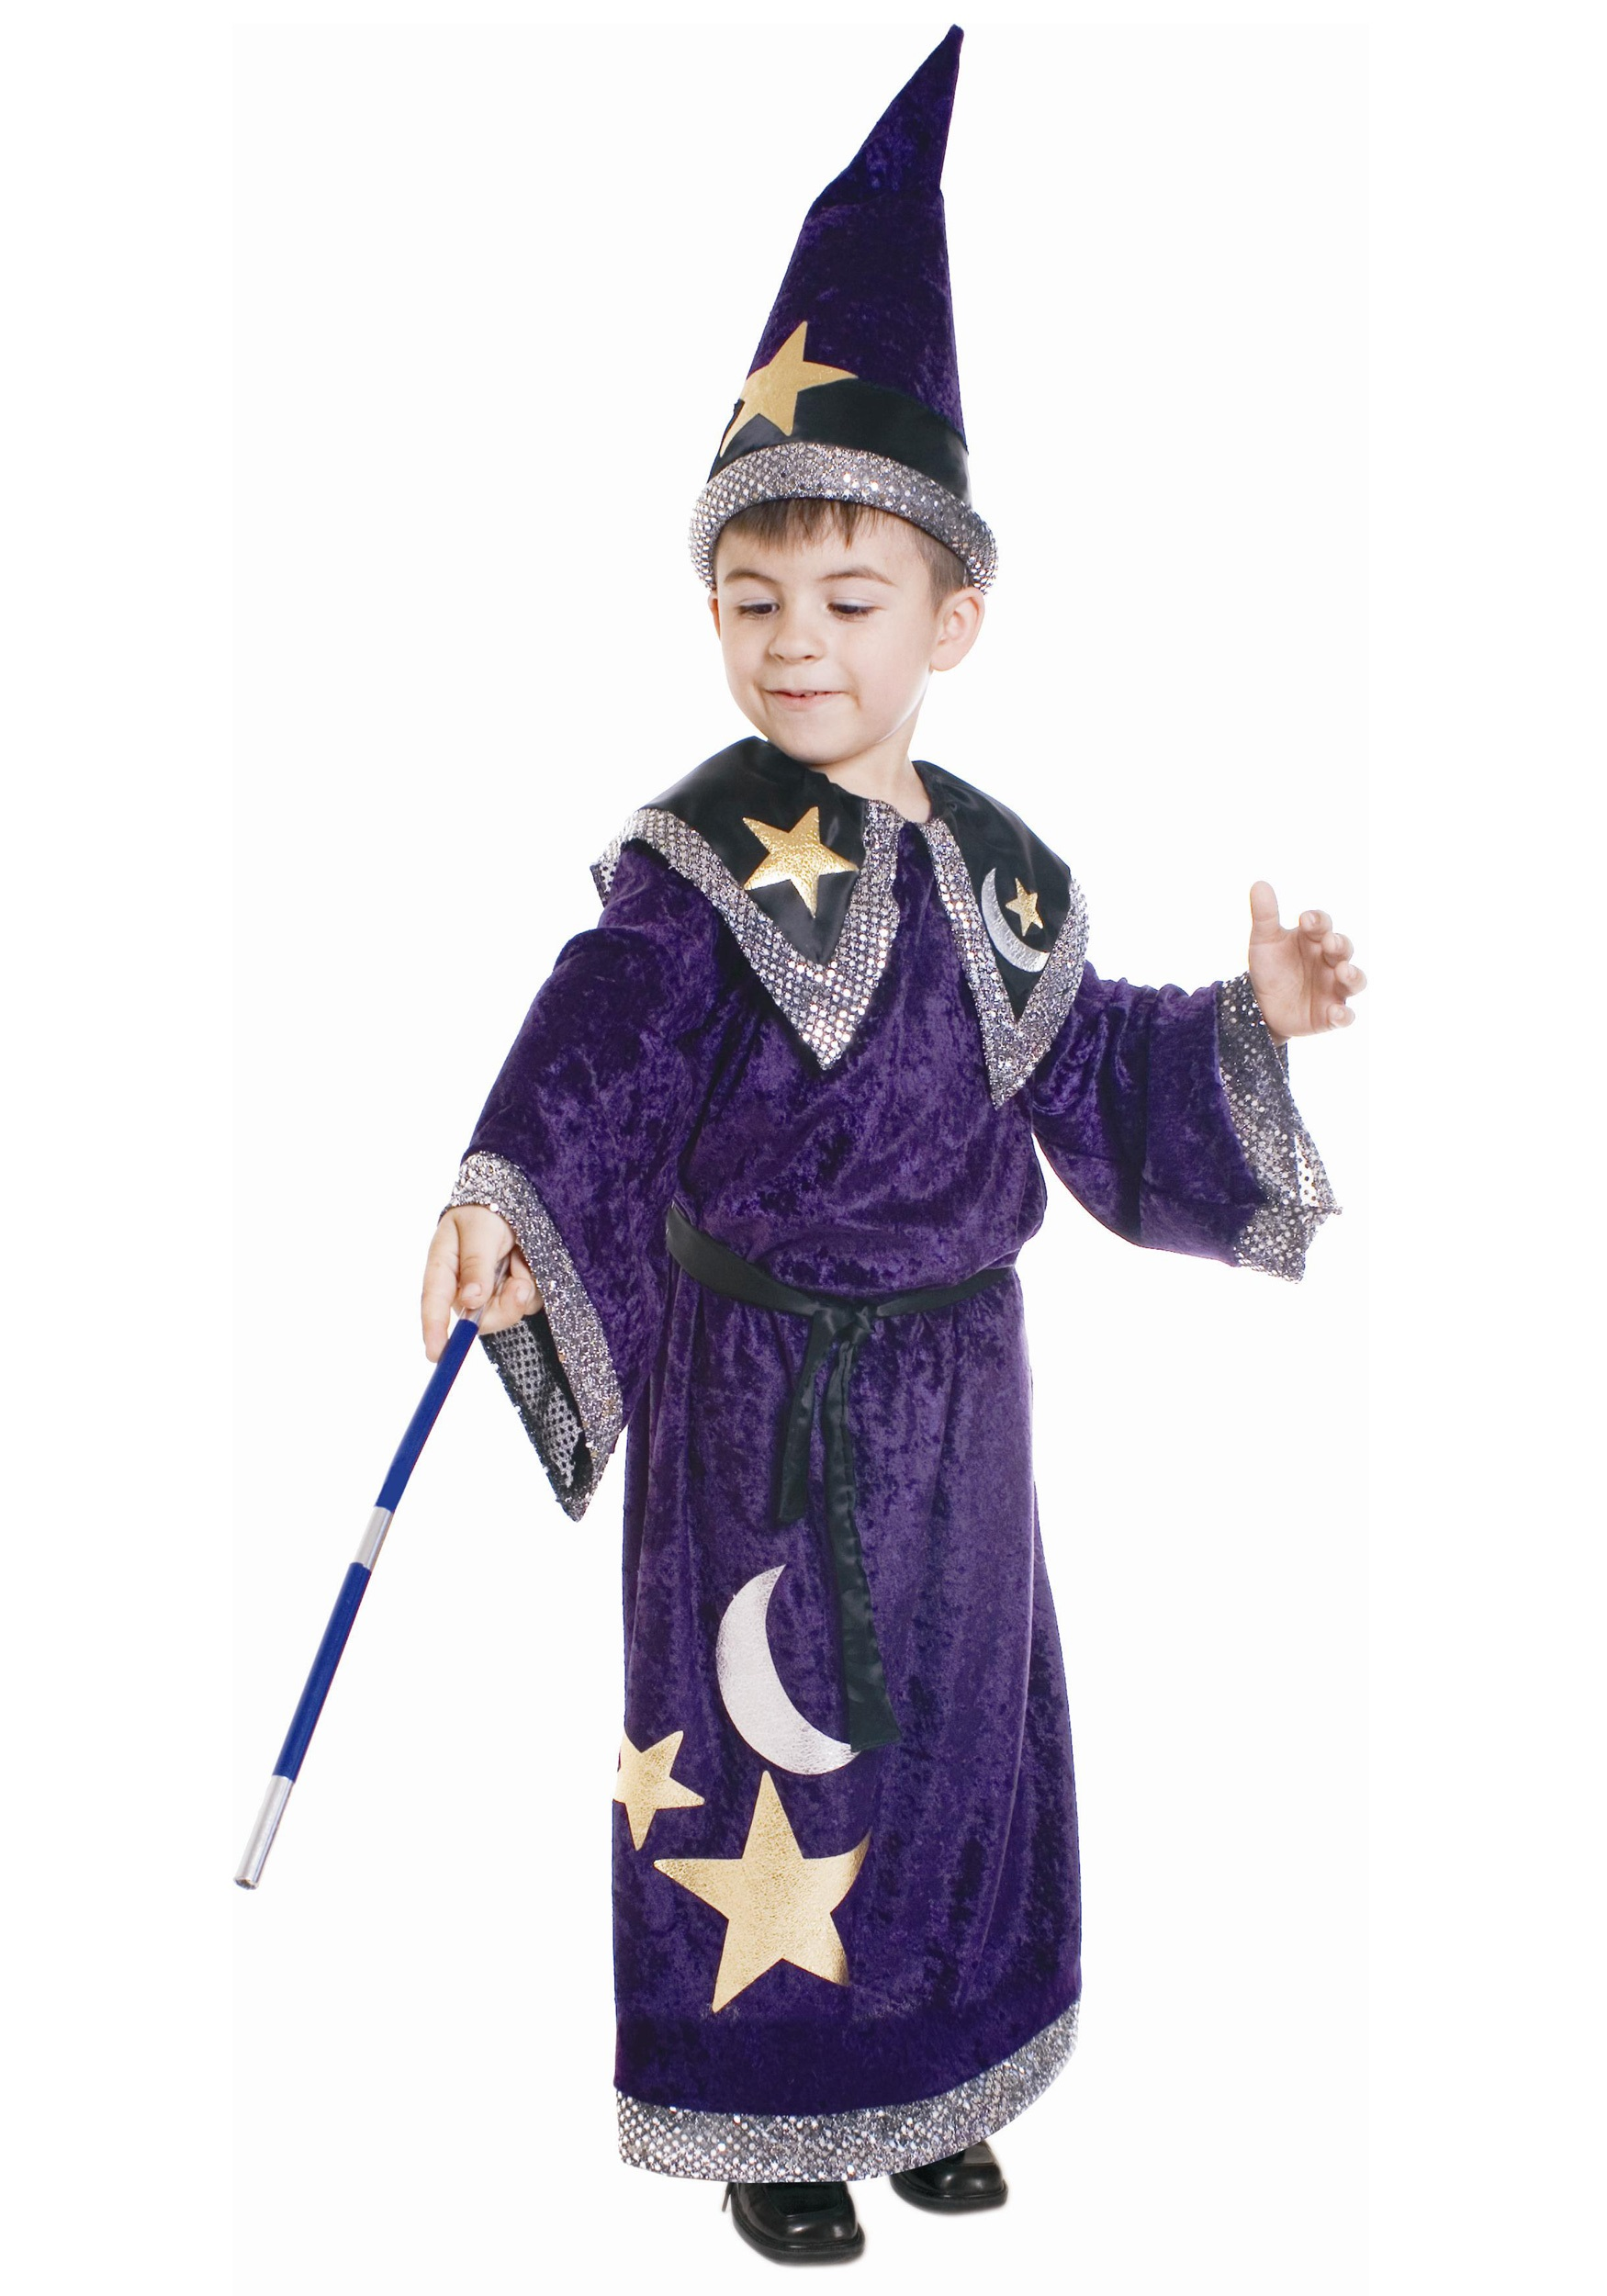 Kids Magic Merlin Wizard Costume with robe belt hat and wand included